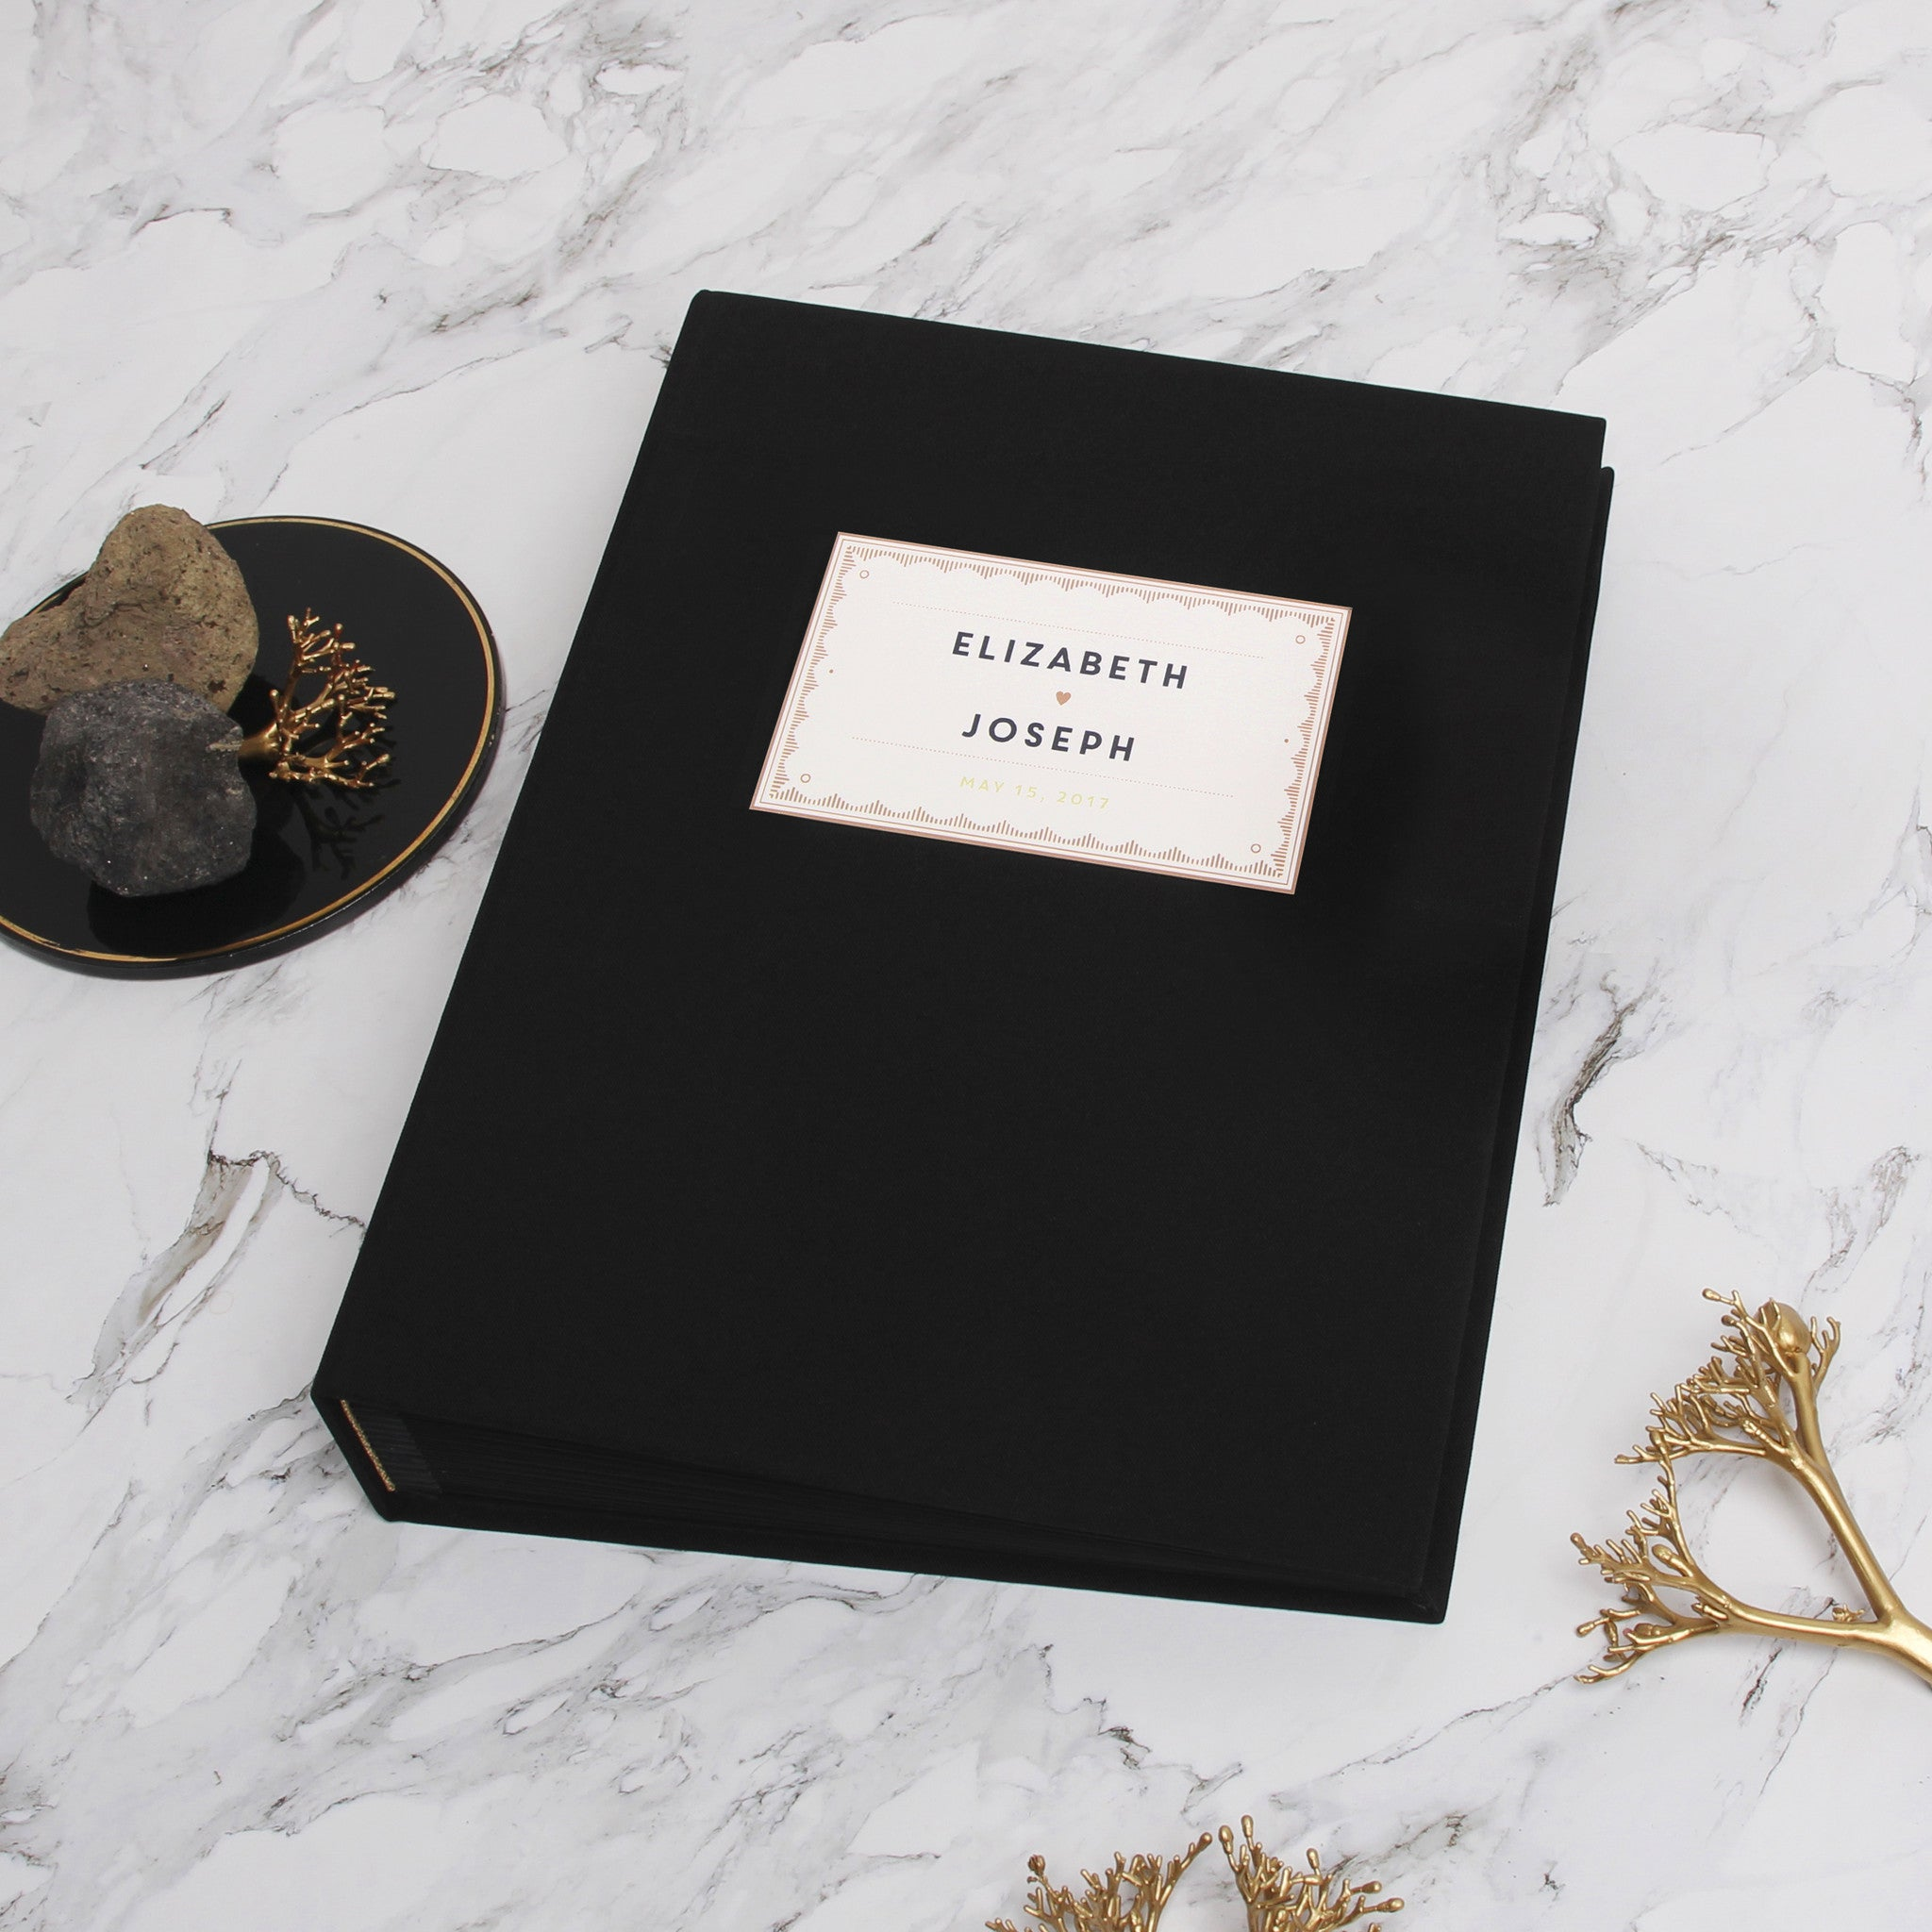 Guest Book Sign in Book Wedding Instant Photo Album Black with Paper Label by Liumy - Liumy